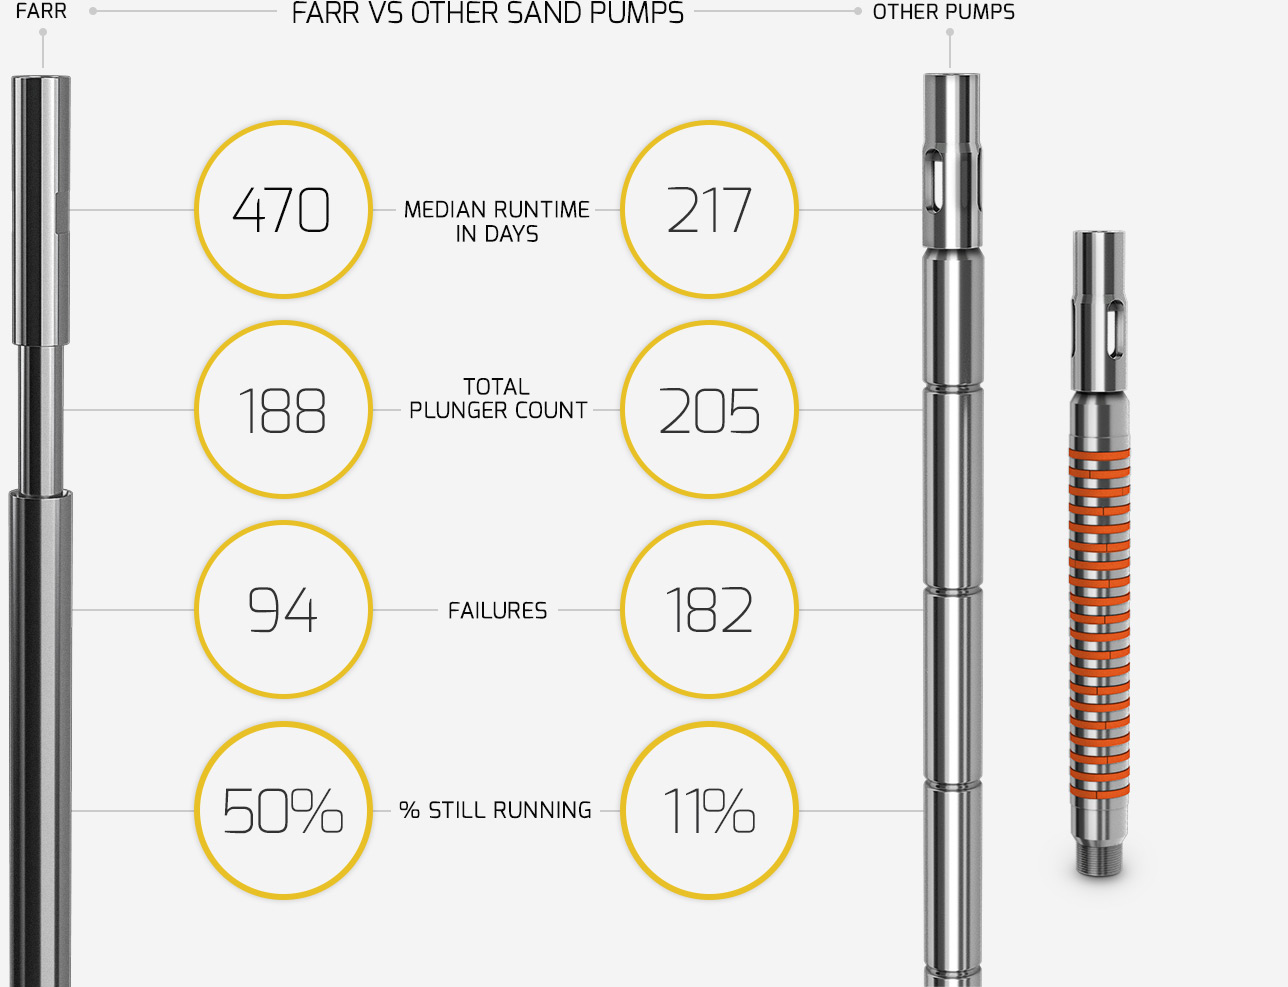 FARR Vs Other Sand Pumps